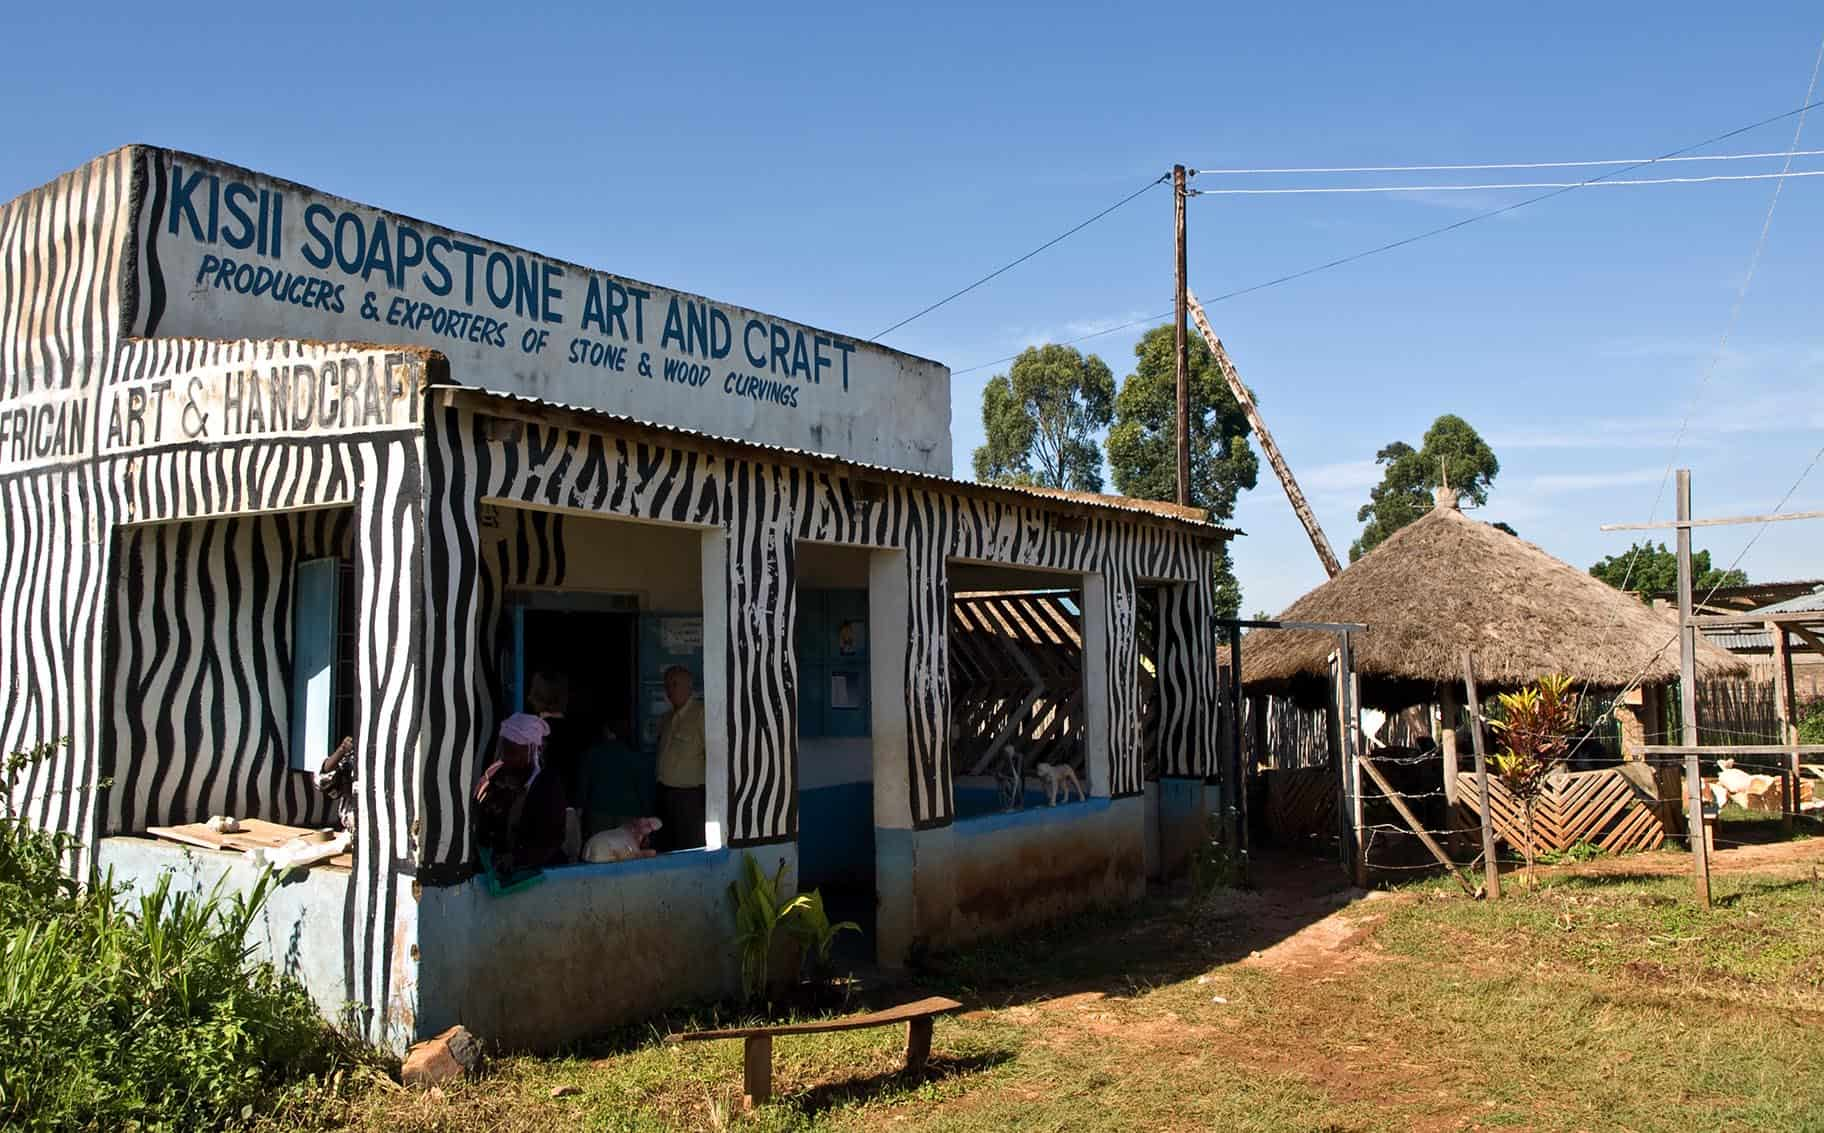 Traditional soapstone carving centre in Kisii, Kenya